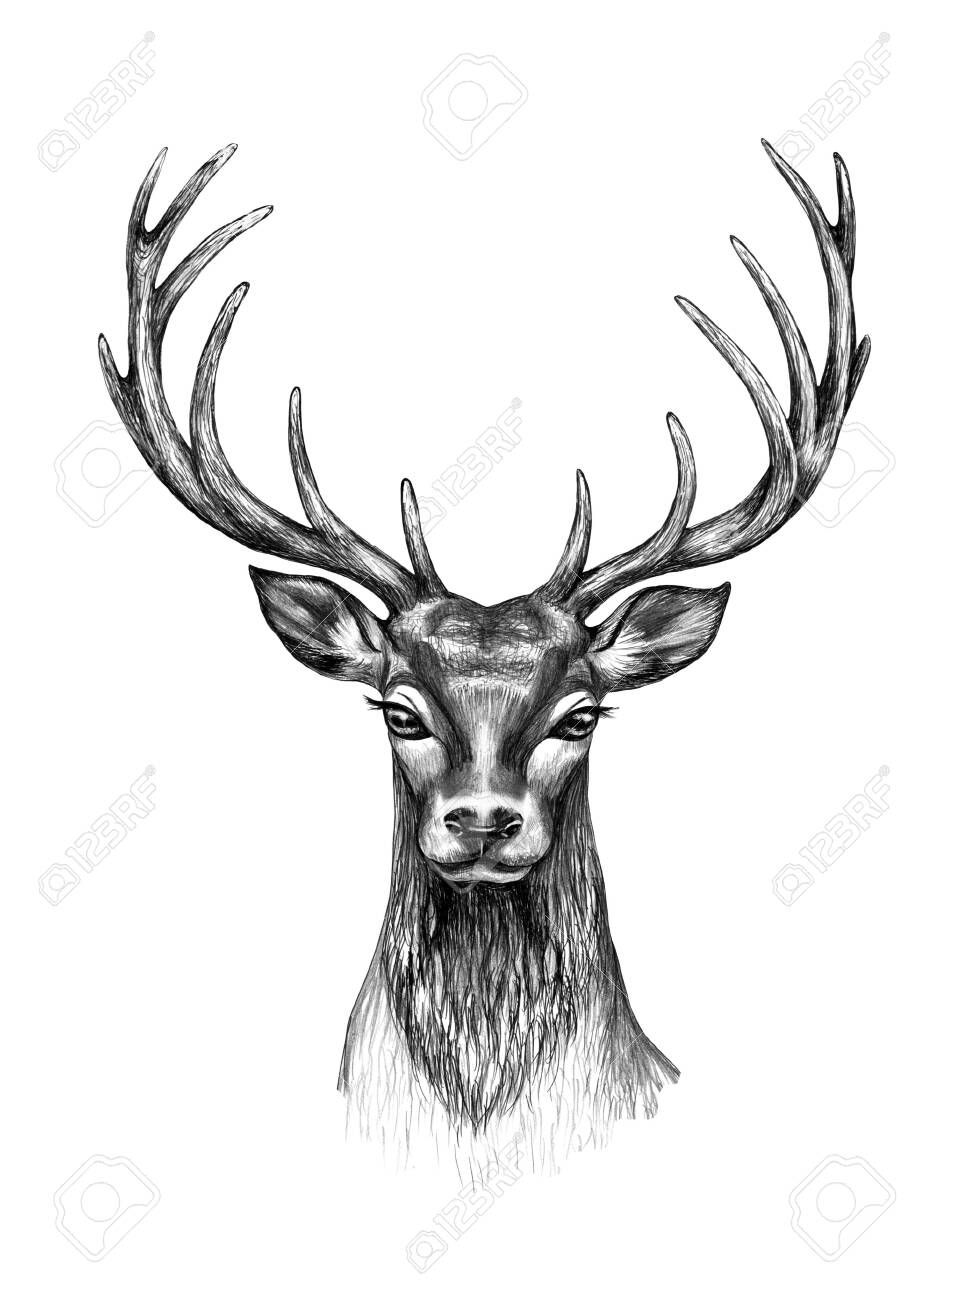 Hand Drawn Deer Head Isolated On White Background Monochrome Non Realistic Deer Head With Big Branched Horns T Shirt Design Tattoo Art Stock Photo A Dovme